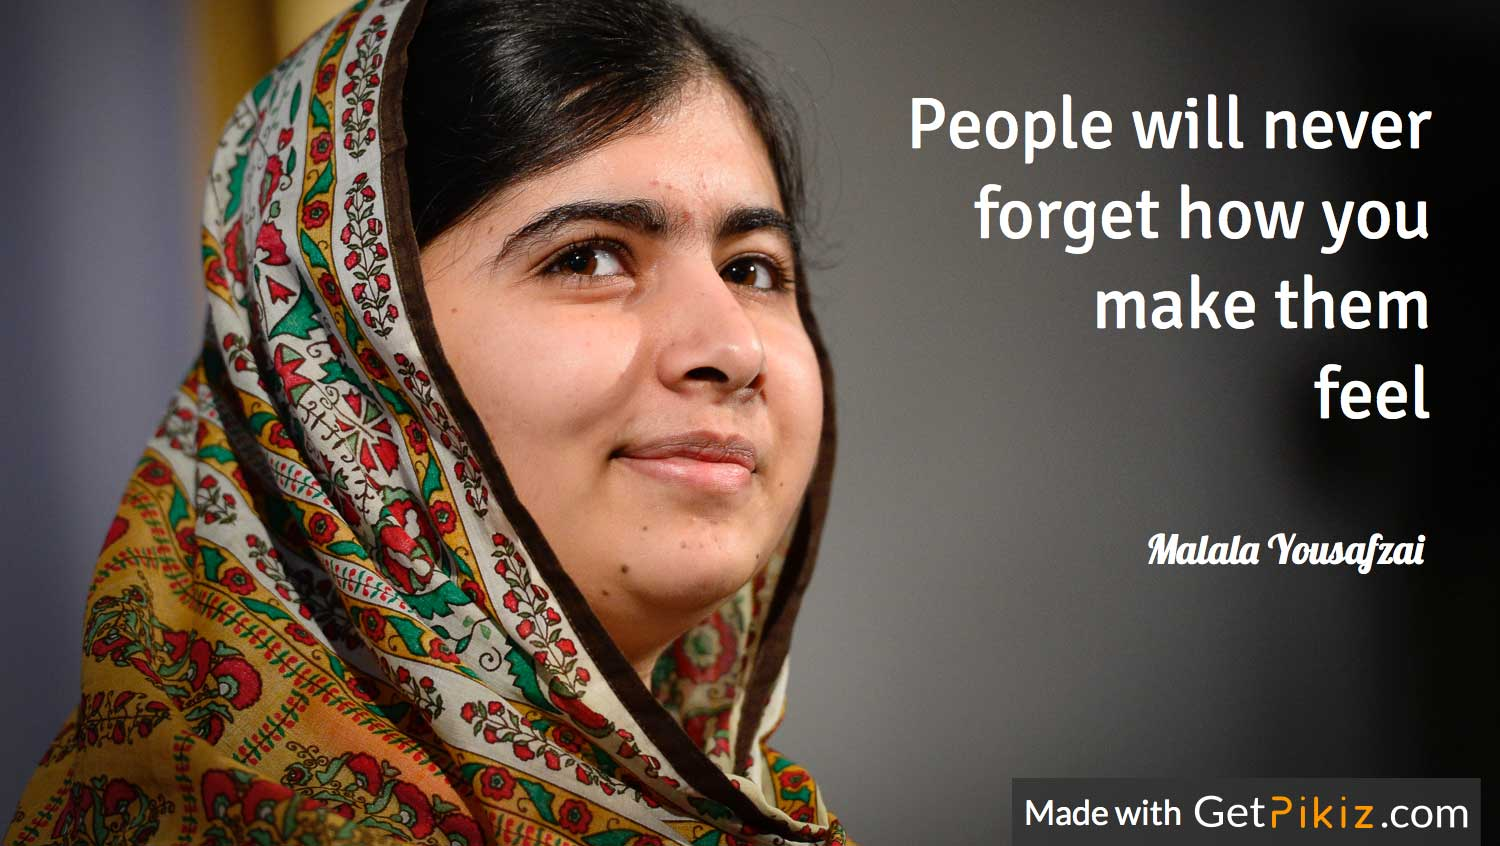 People will never forget how you make them feel - Malala Yousafzai